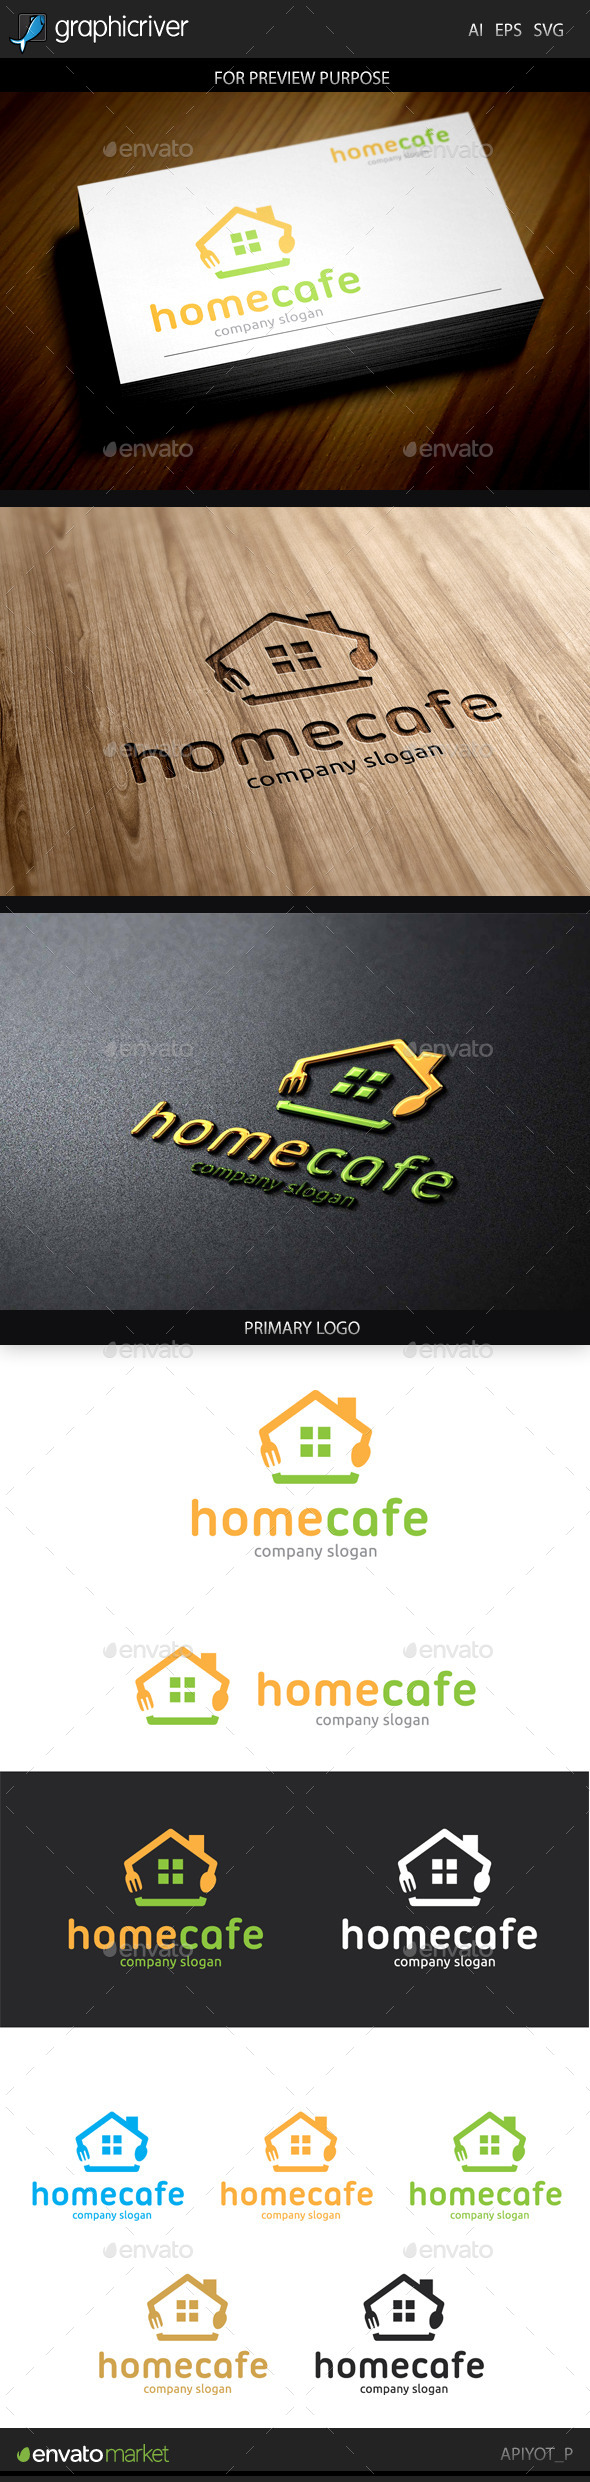 GraphicRiver Home Cafe logo 9224905